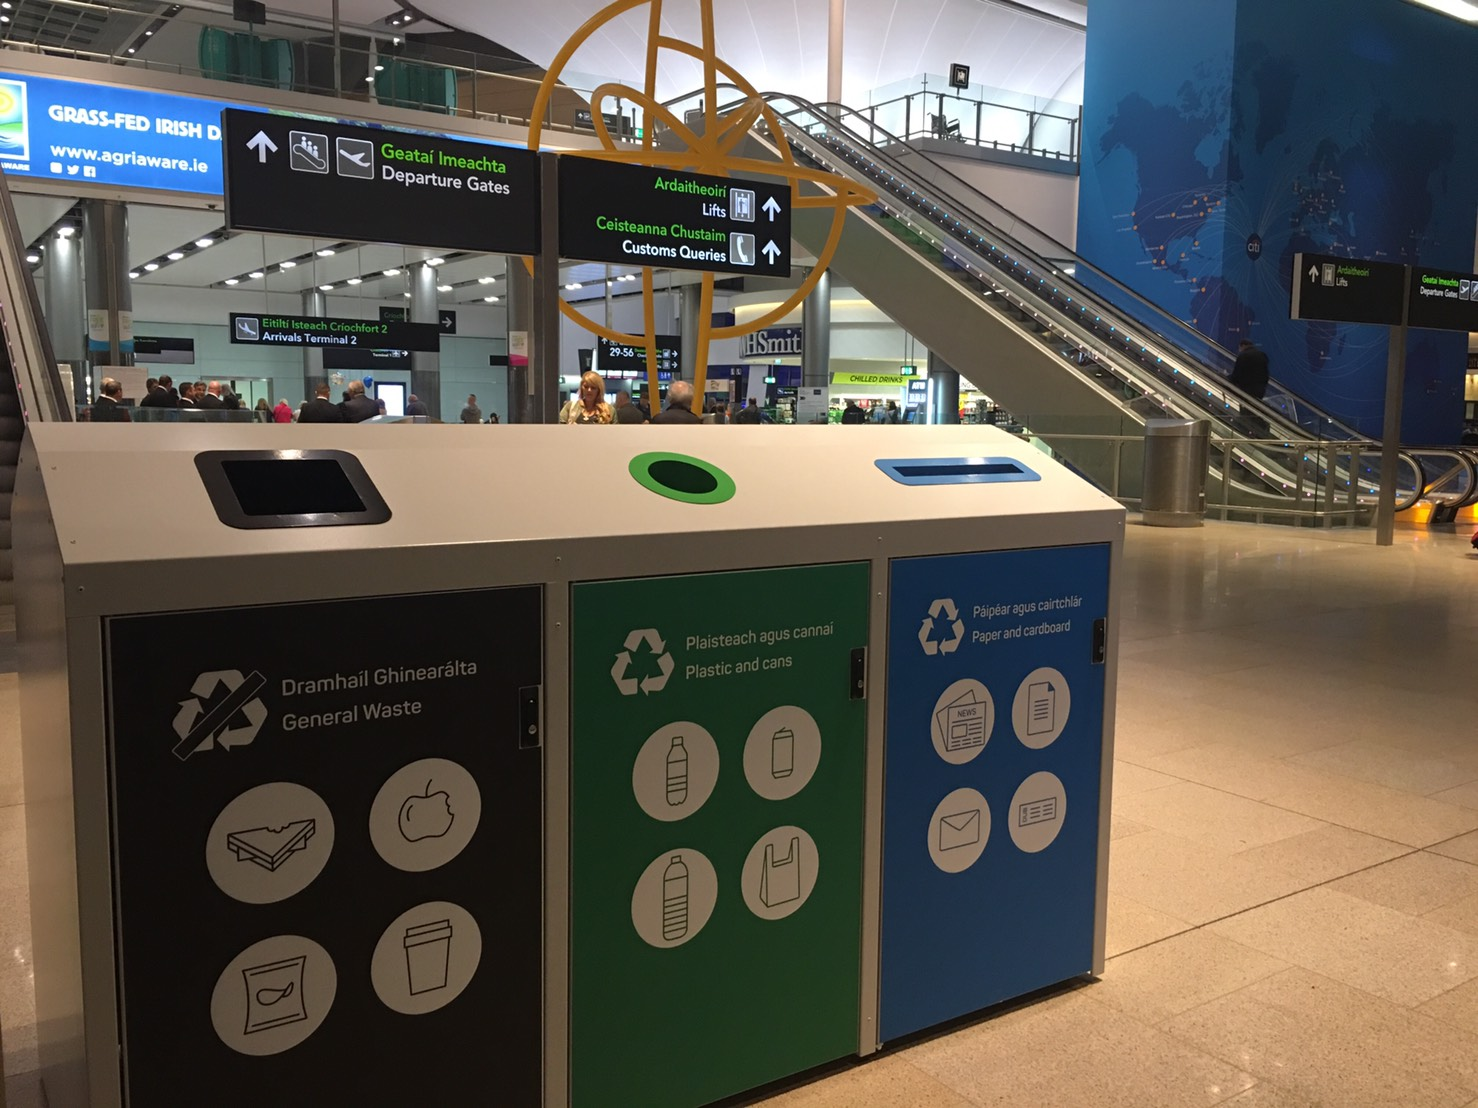 Dublin Airport increases waste collection efficiency by 90% with Ecube Labs technology